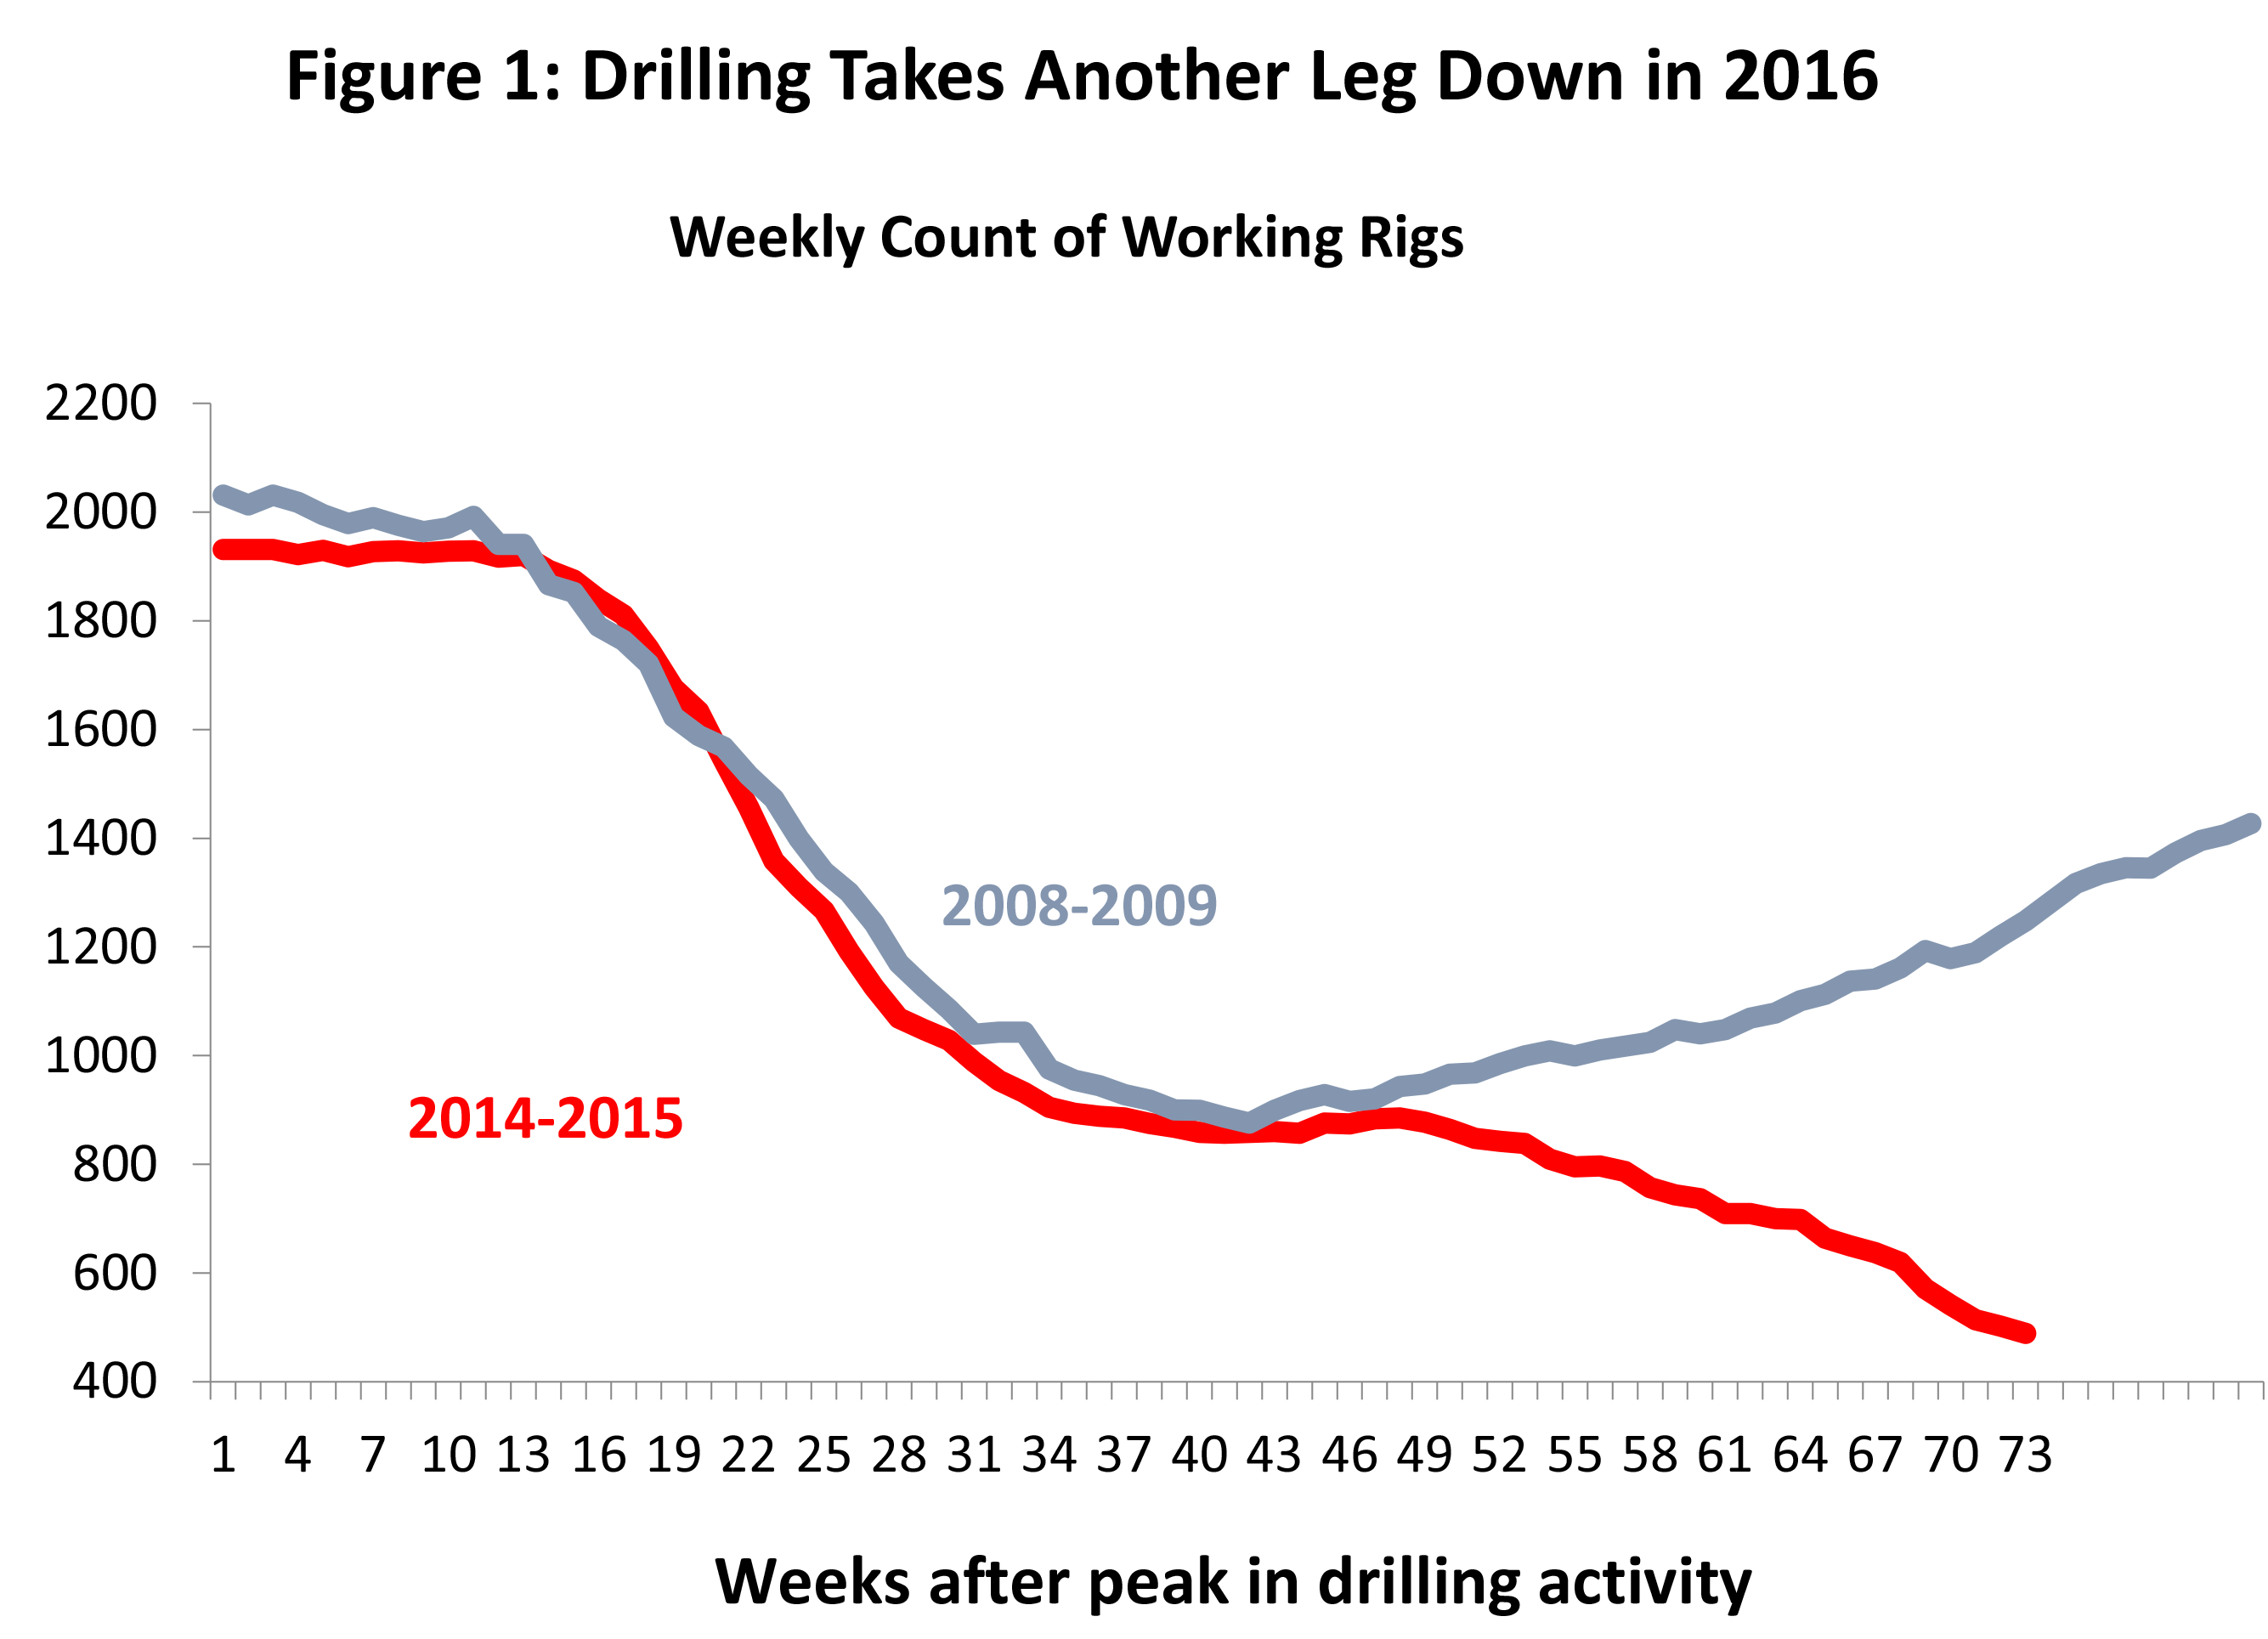 Figure 1: Drilling Takes Another Leg Down in 2016.